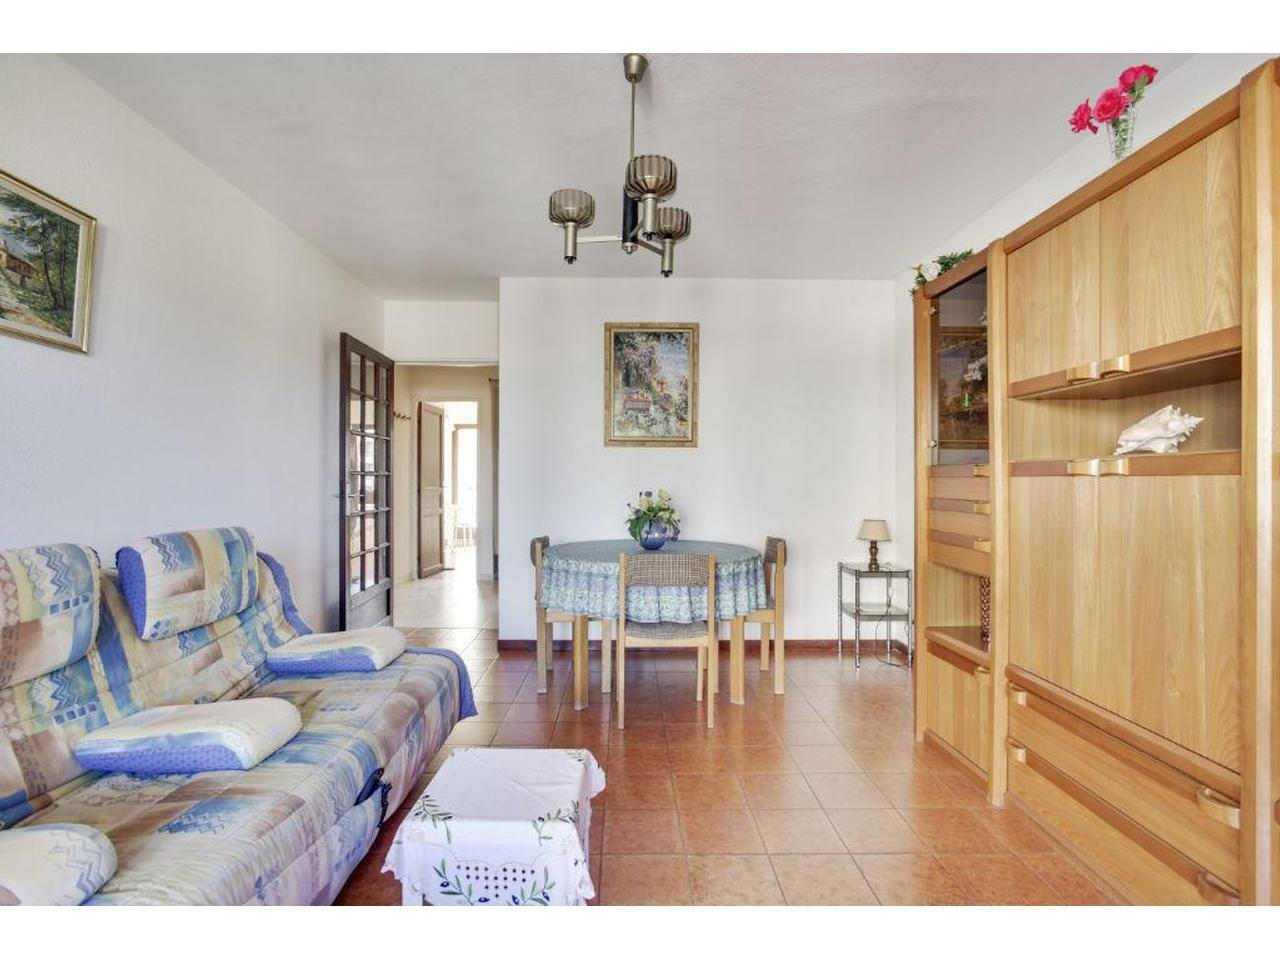 Appartement  2 Rooms 48m2  for sale   381 000 €